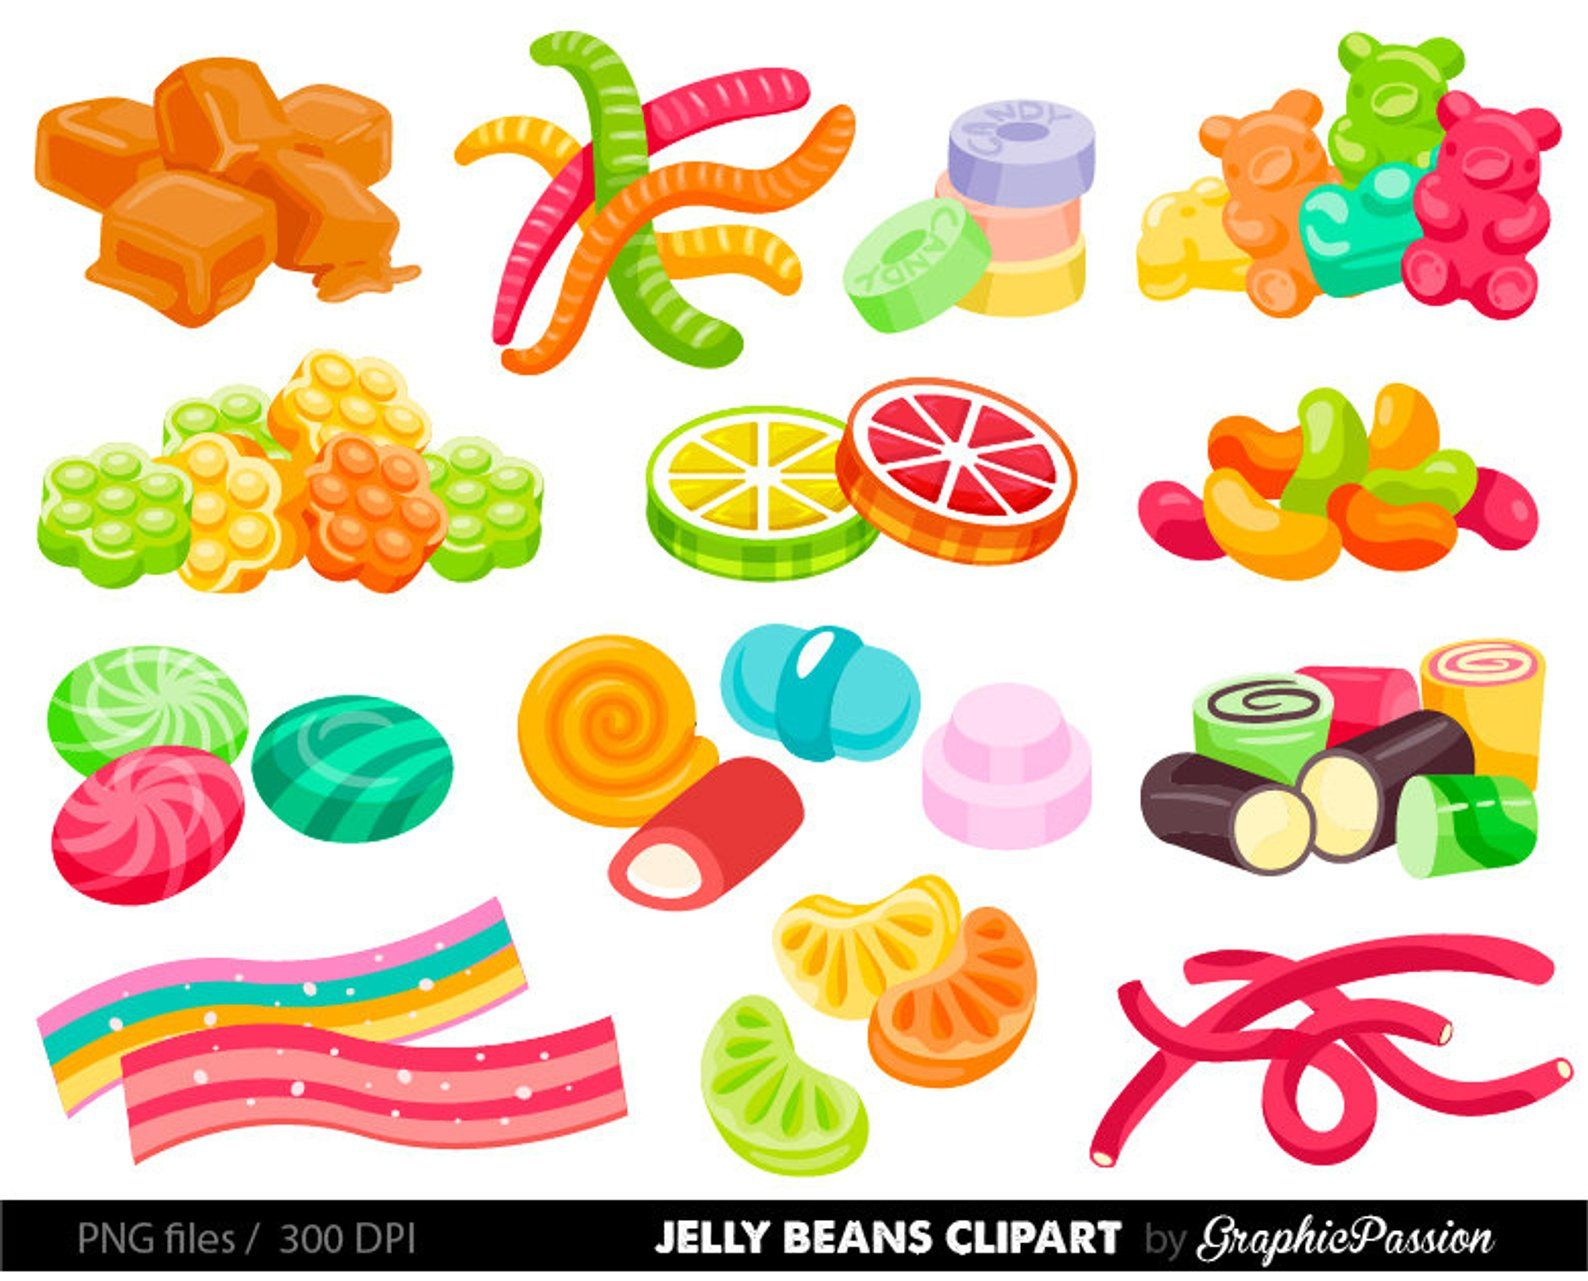 Jelly beans clipart Candy graphics Wonka Party Clipart.